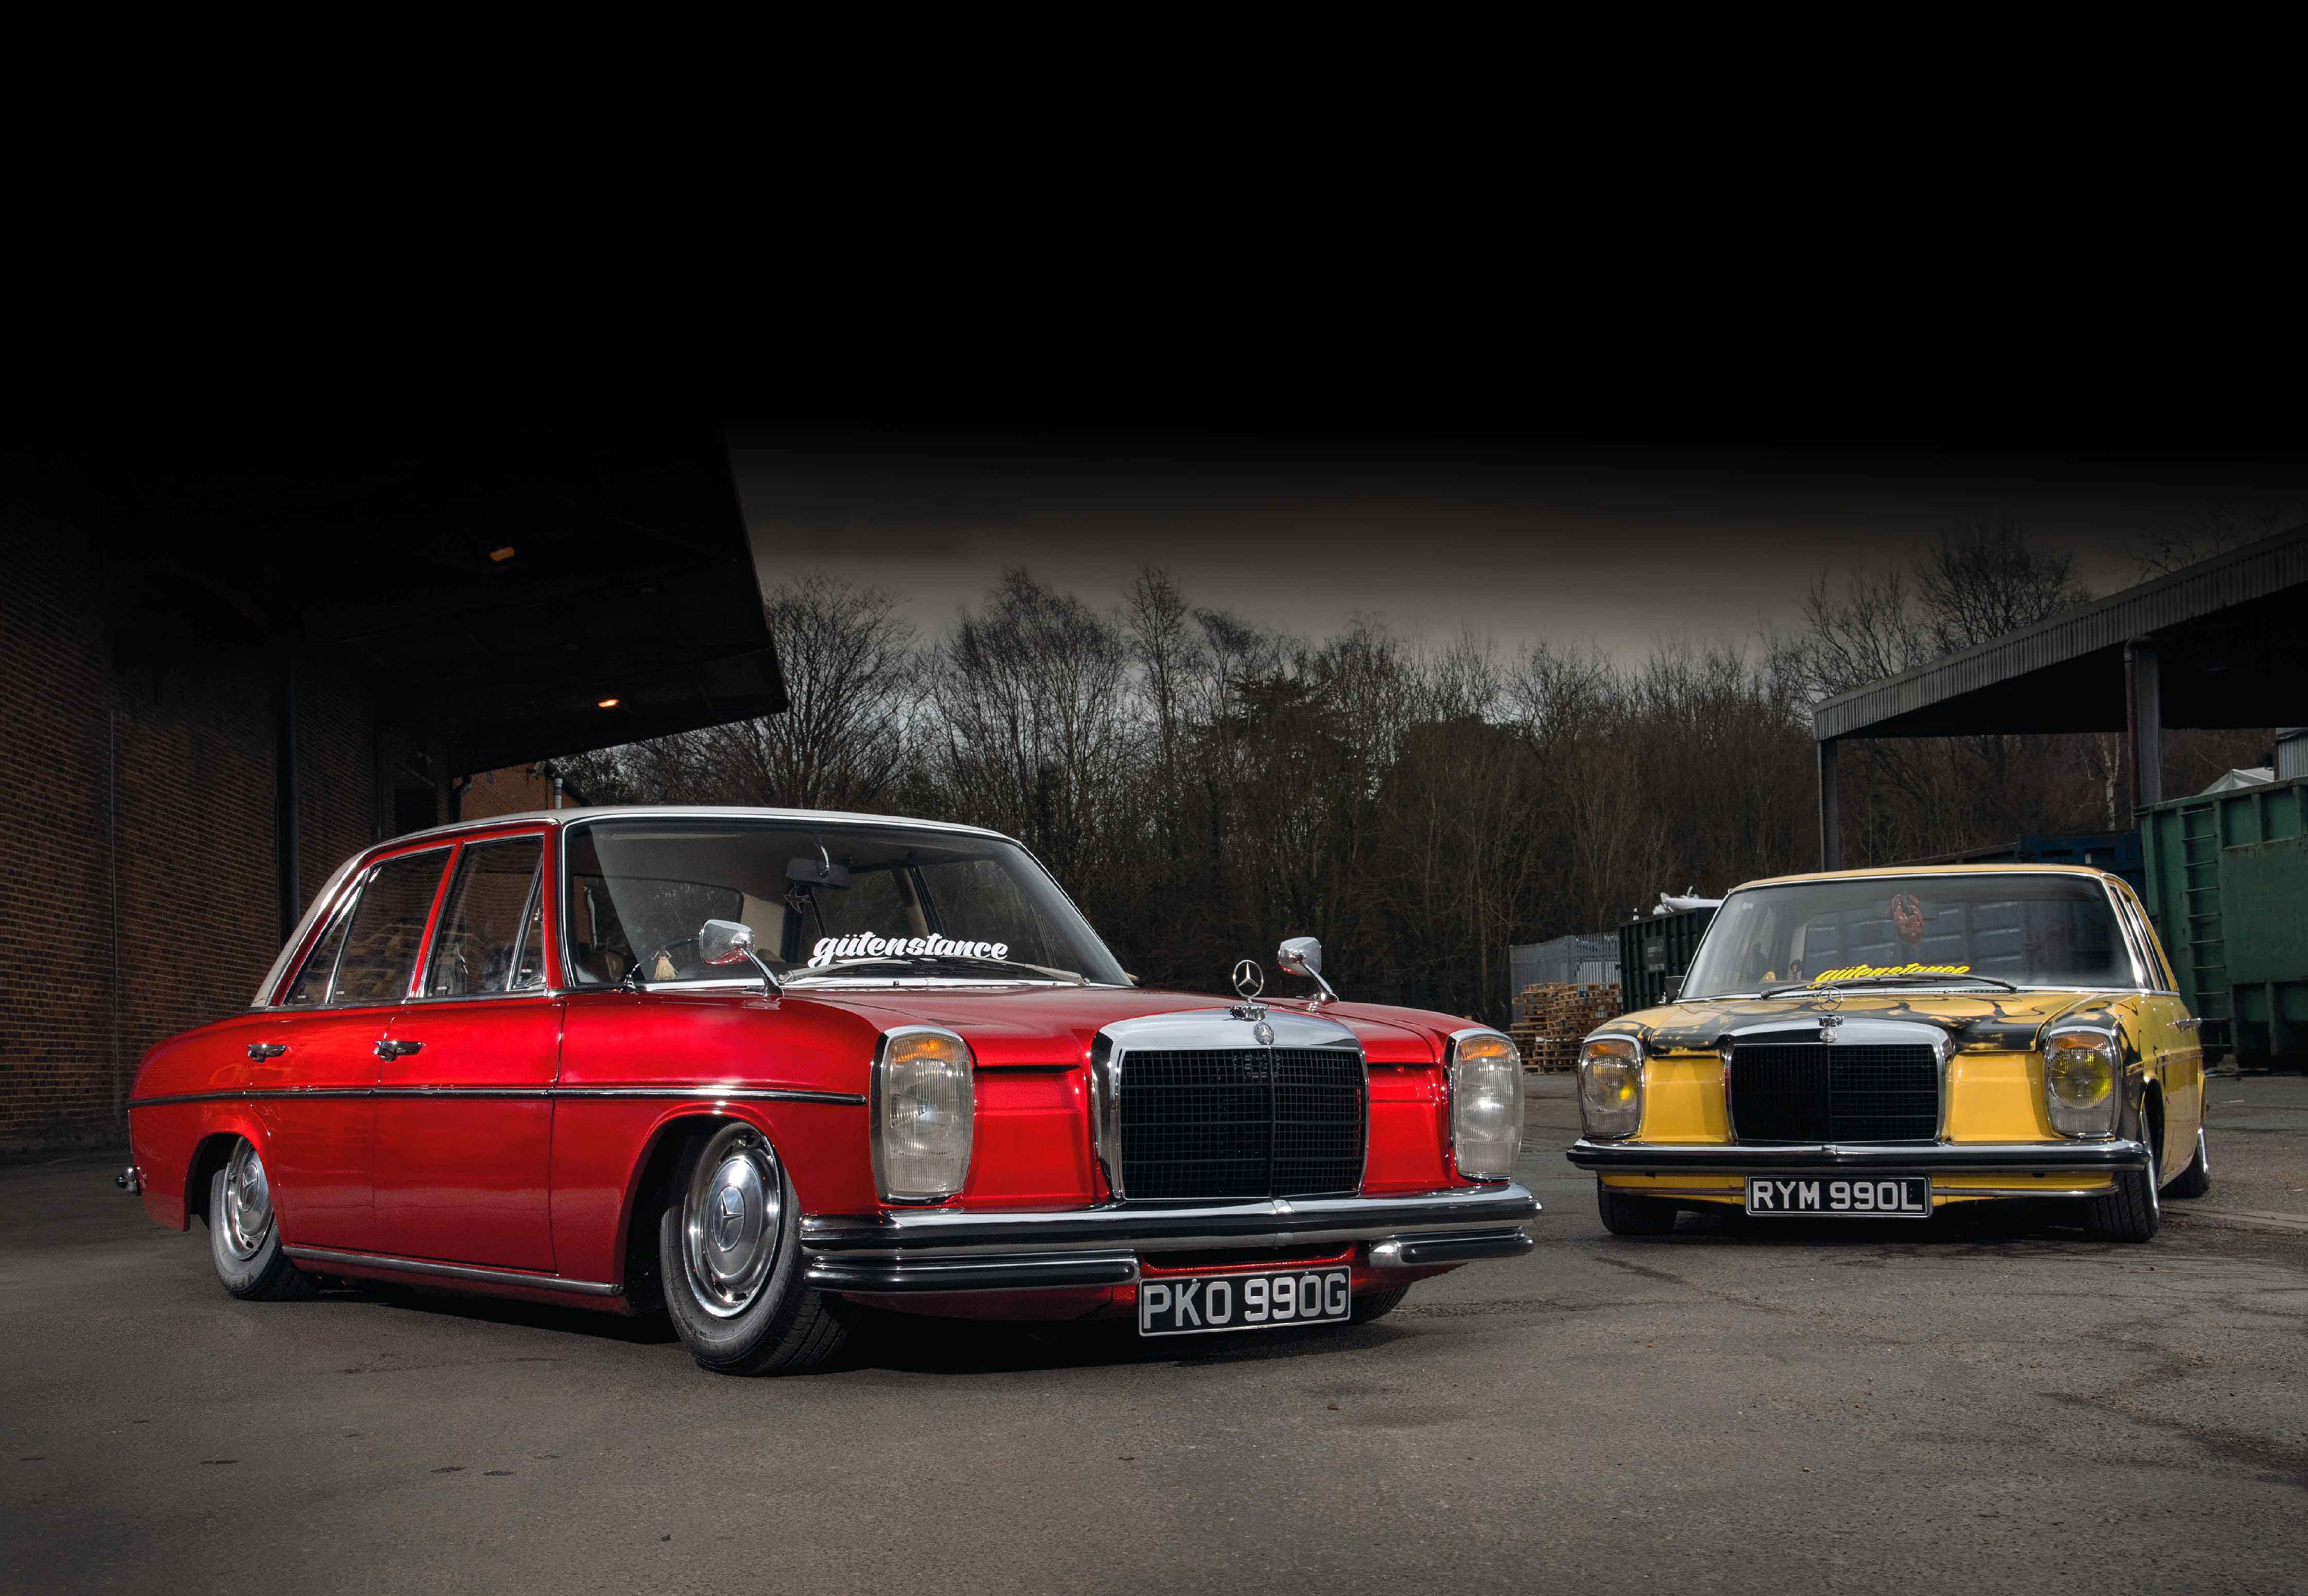 The Chelsea Lower Show Mercedes Benz 280 W114 Yellow And 250 Red